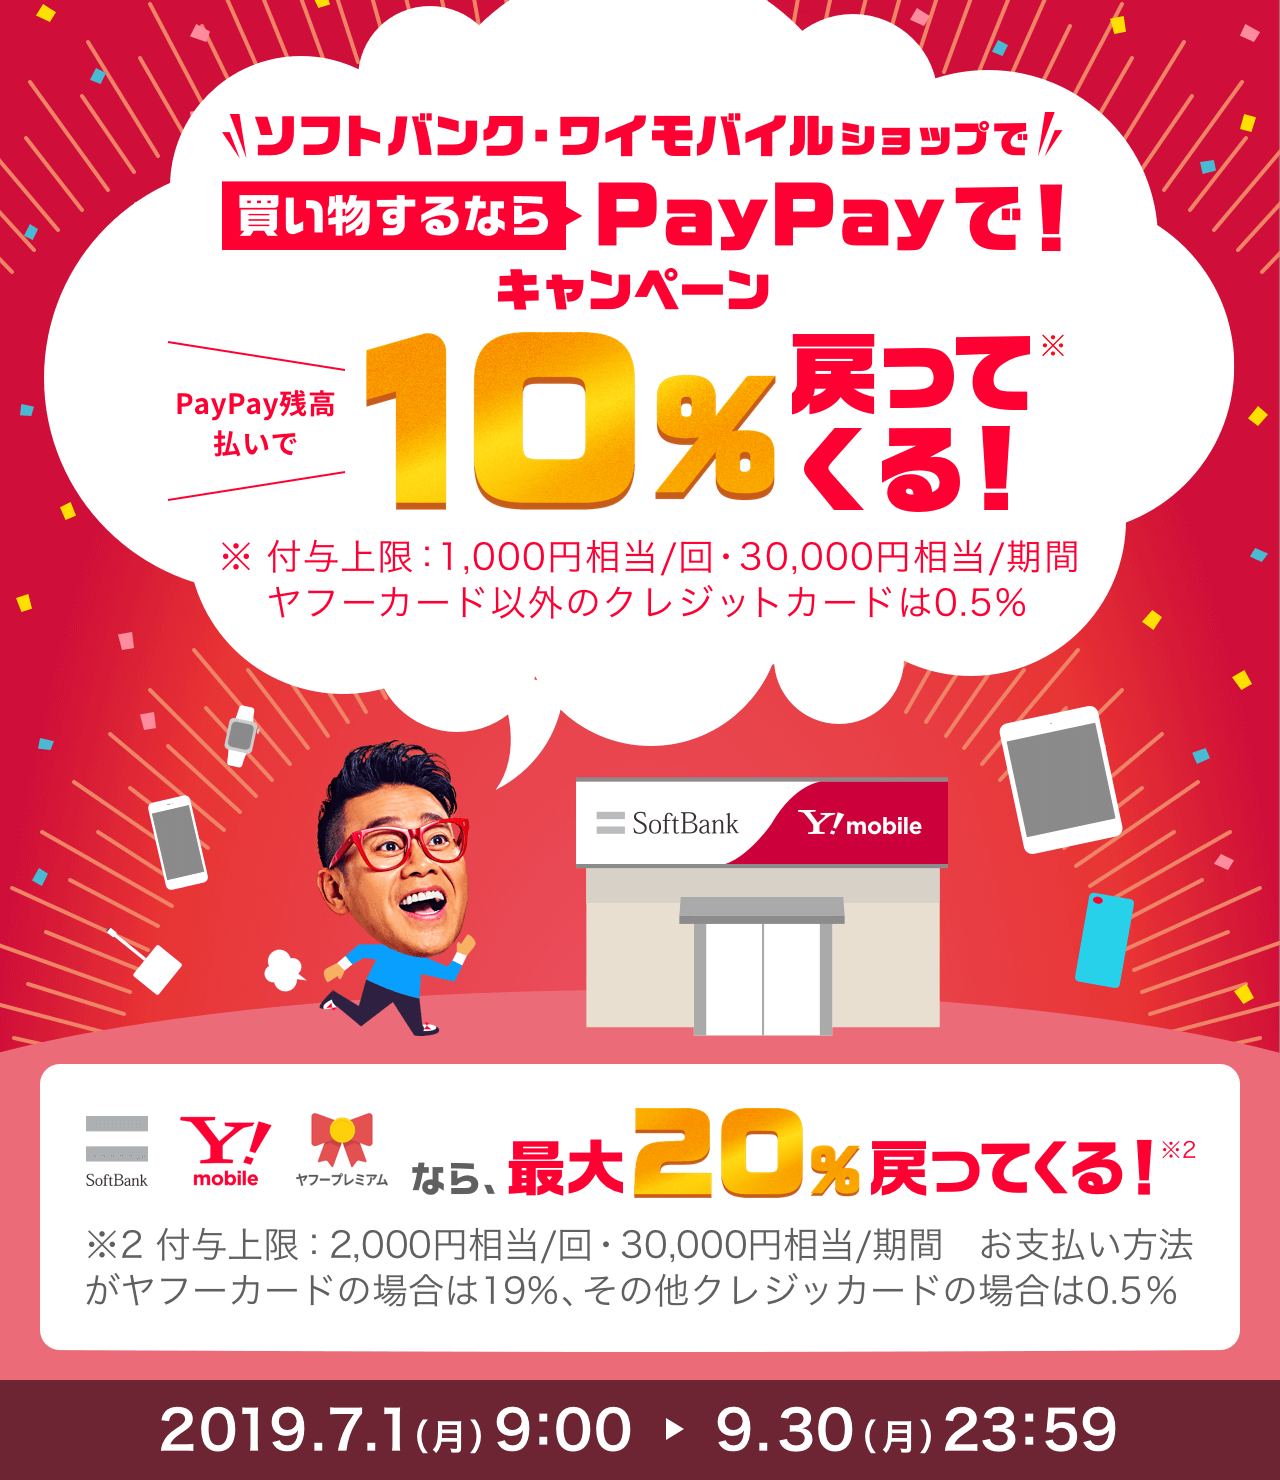 https://image.paypay.ne.jp/page/event/sbym-shop/images/img_mainvisual_01.png